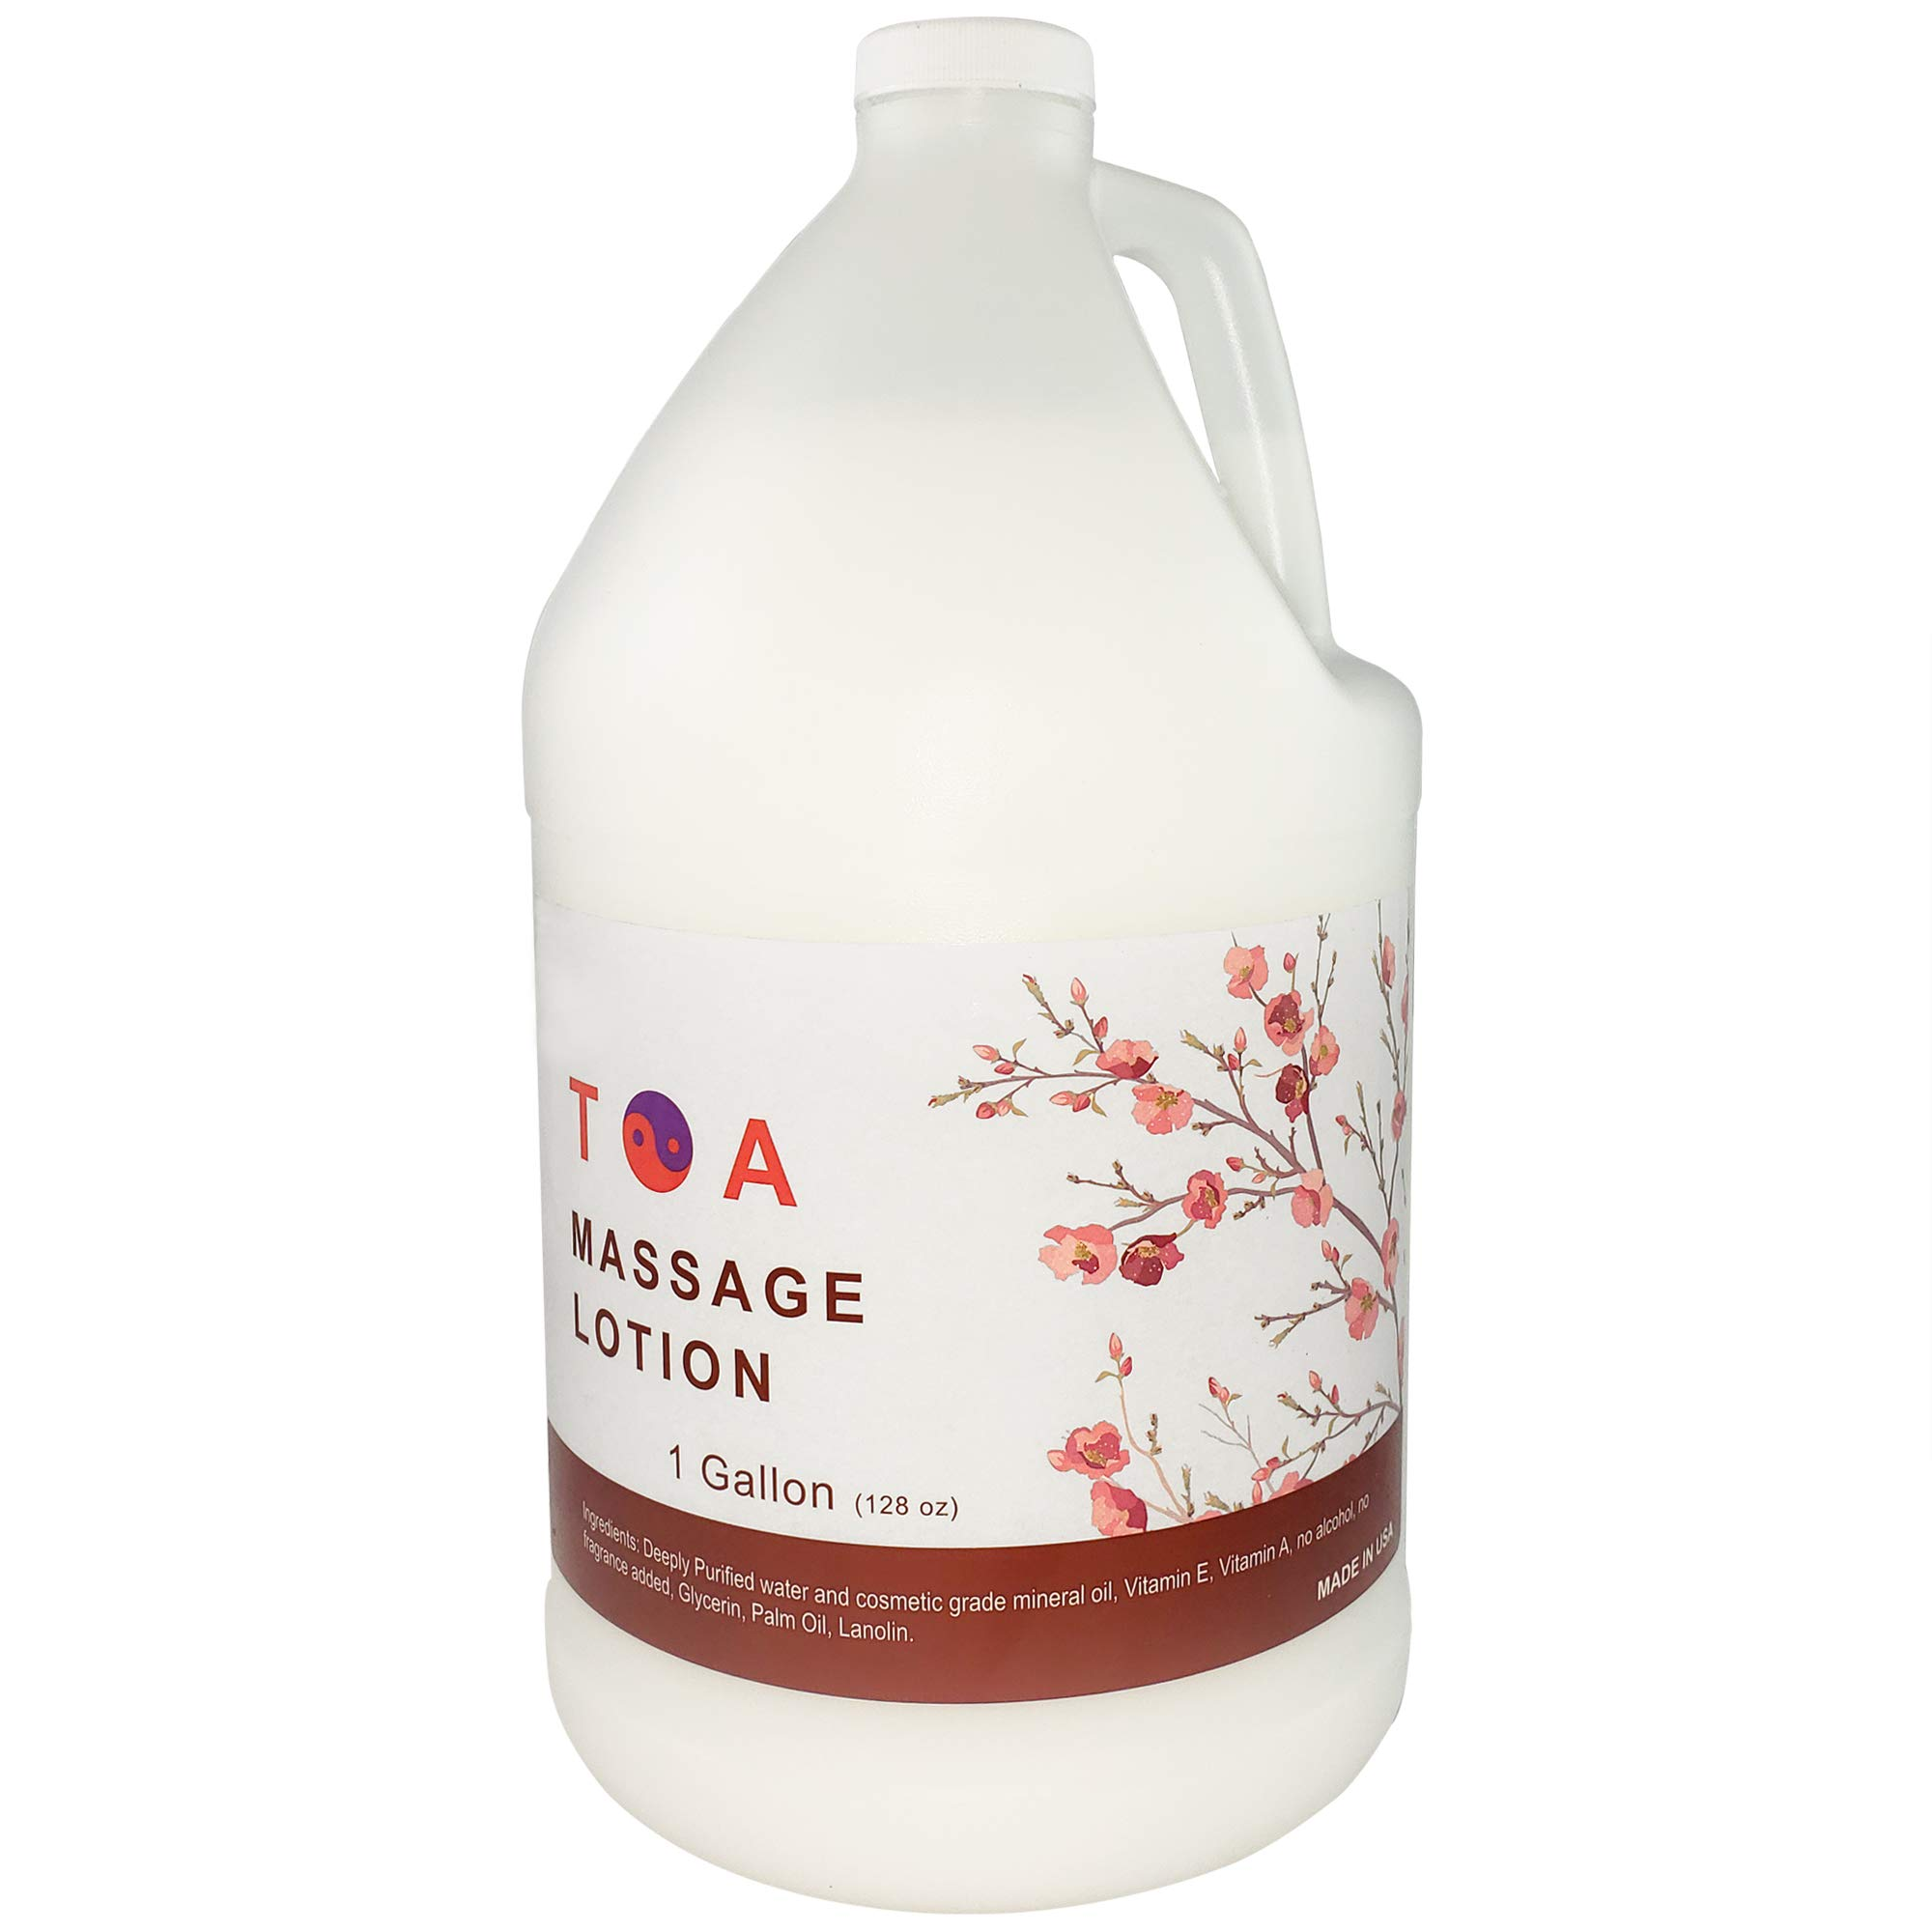 TOA Natural Massage Lotion for a Relaxing Massage Hydrating Unscented Product 1 Gallon Bottle by TOA Supply